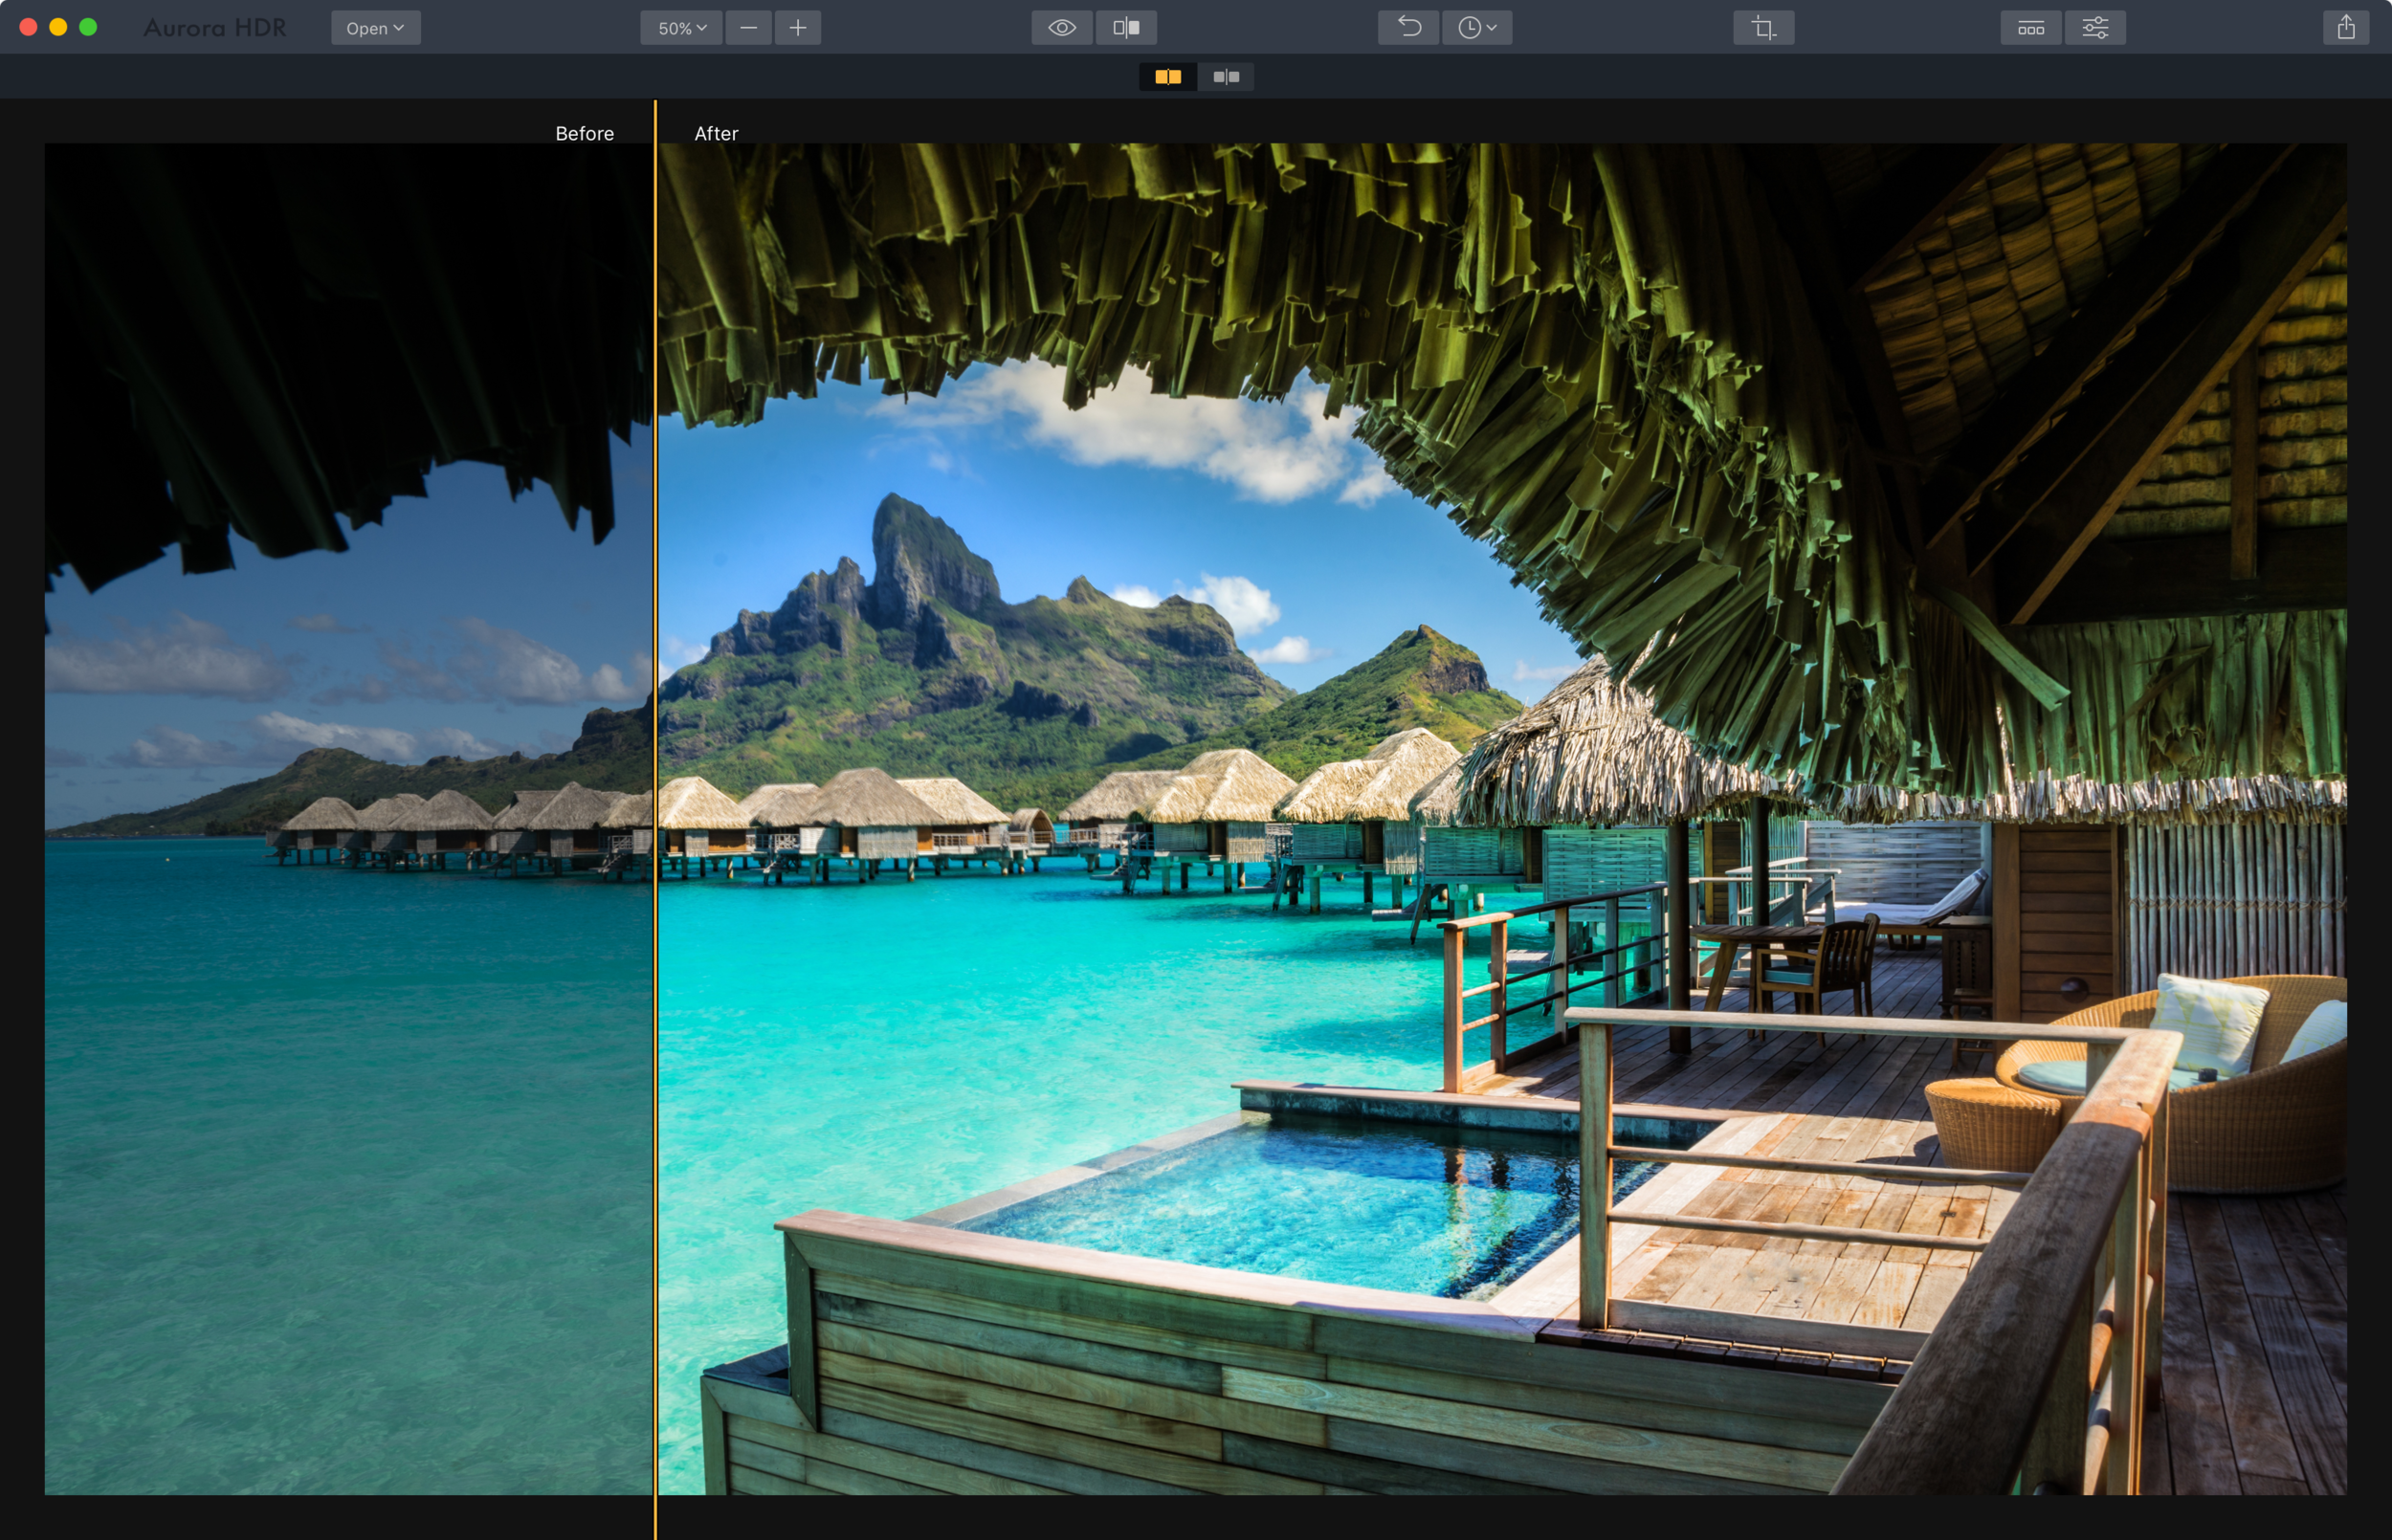 Before&After_1. Image by Trey Ratcliff.png